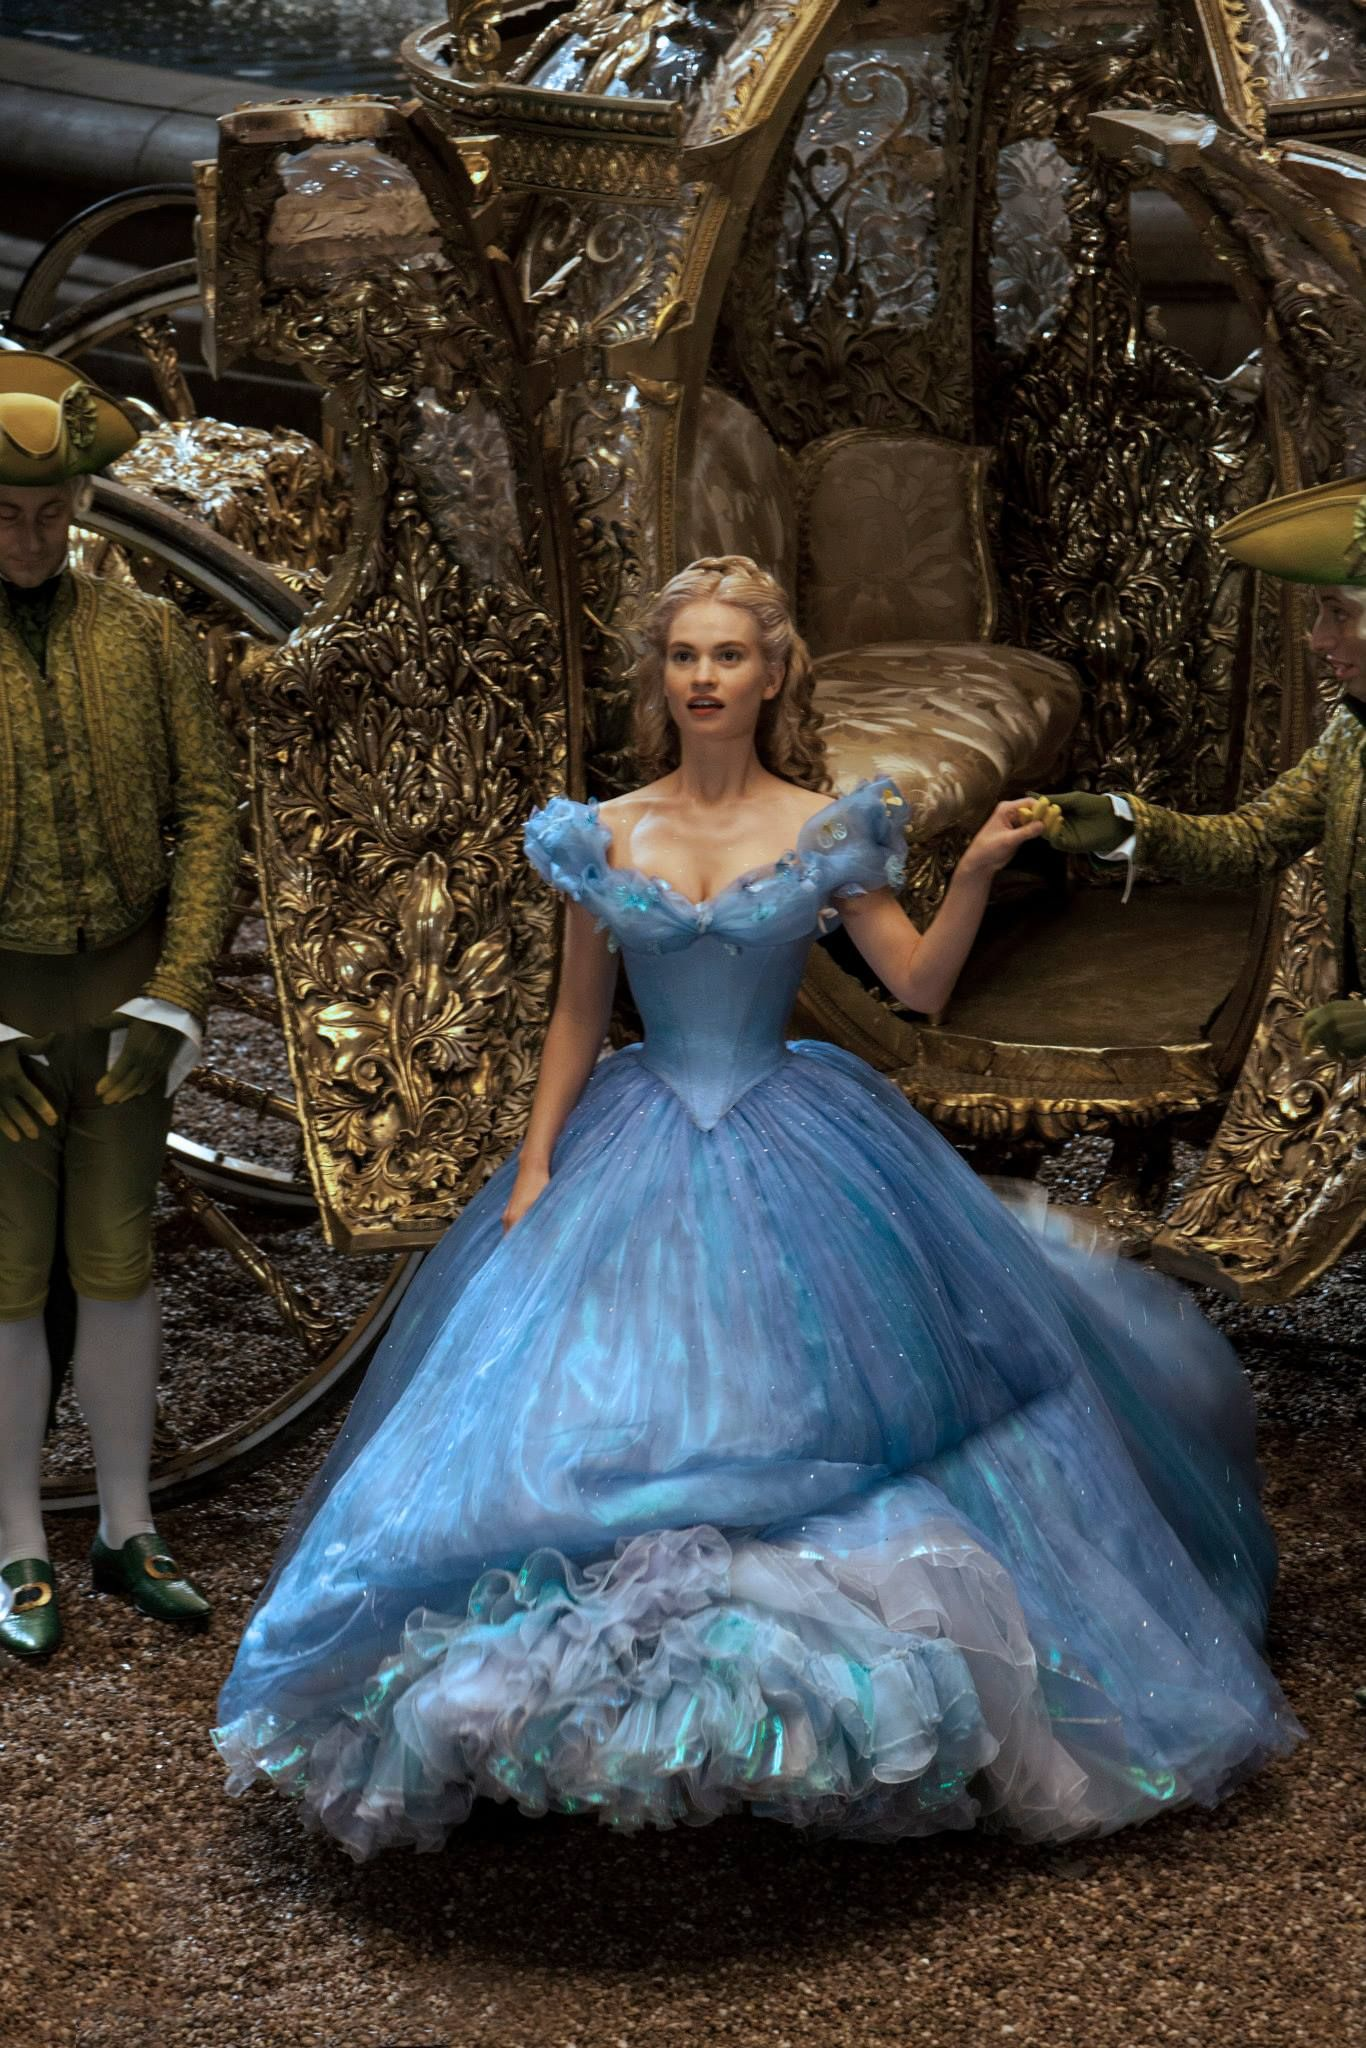 Cinderella Is One Of My Favorite Princesses And I Enjoyed Every Minute Of This Movie Cinderella Dresses Cinderella Costume Cinderella